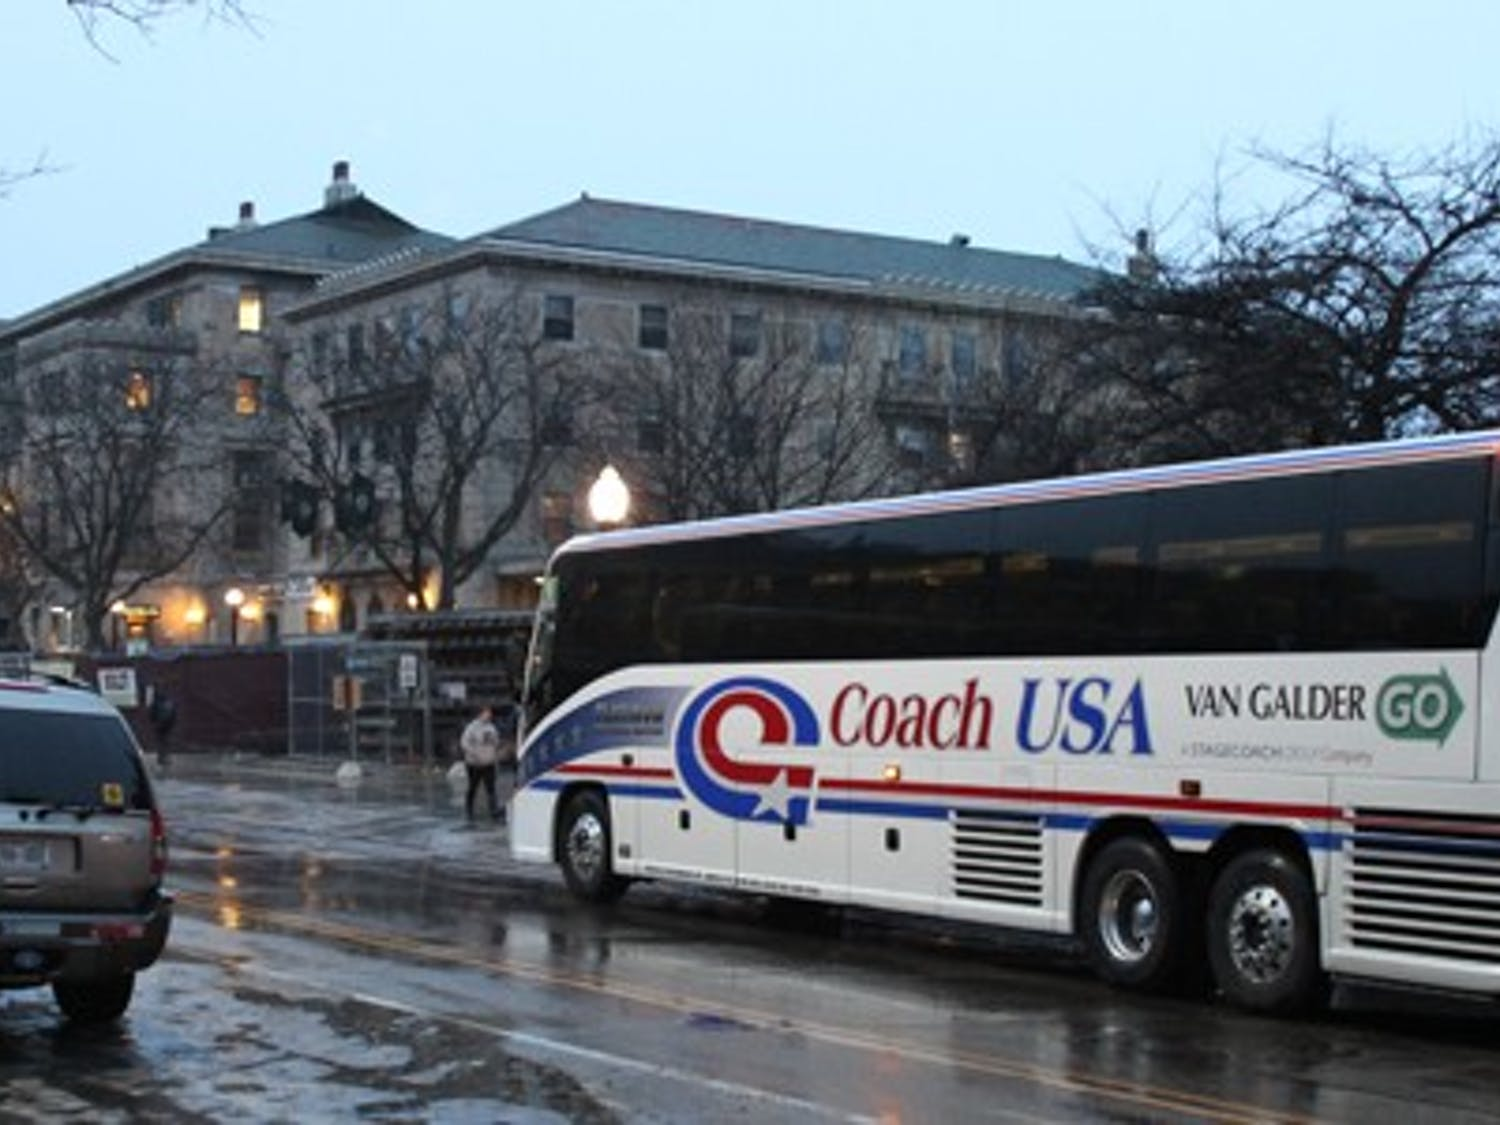 Popular regional bus companies will no longer load passengers outside of Memorial Union due to safety and traffic concerns, like narrow streets and sidewalks that are heavily populated by pedestrians and bicyclists.